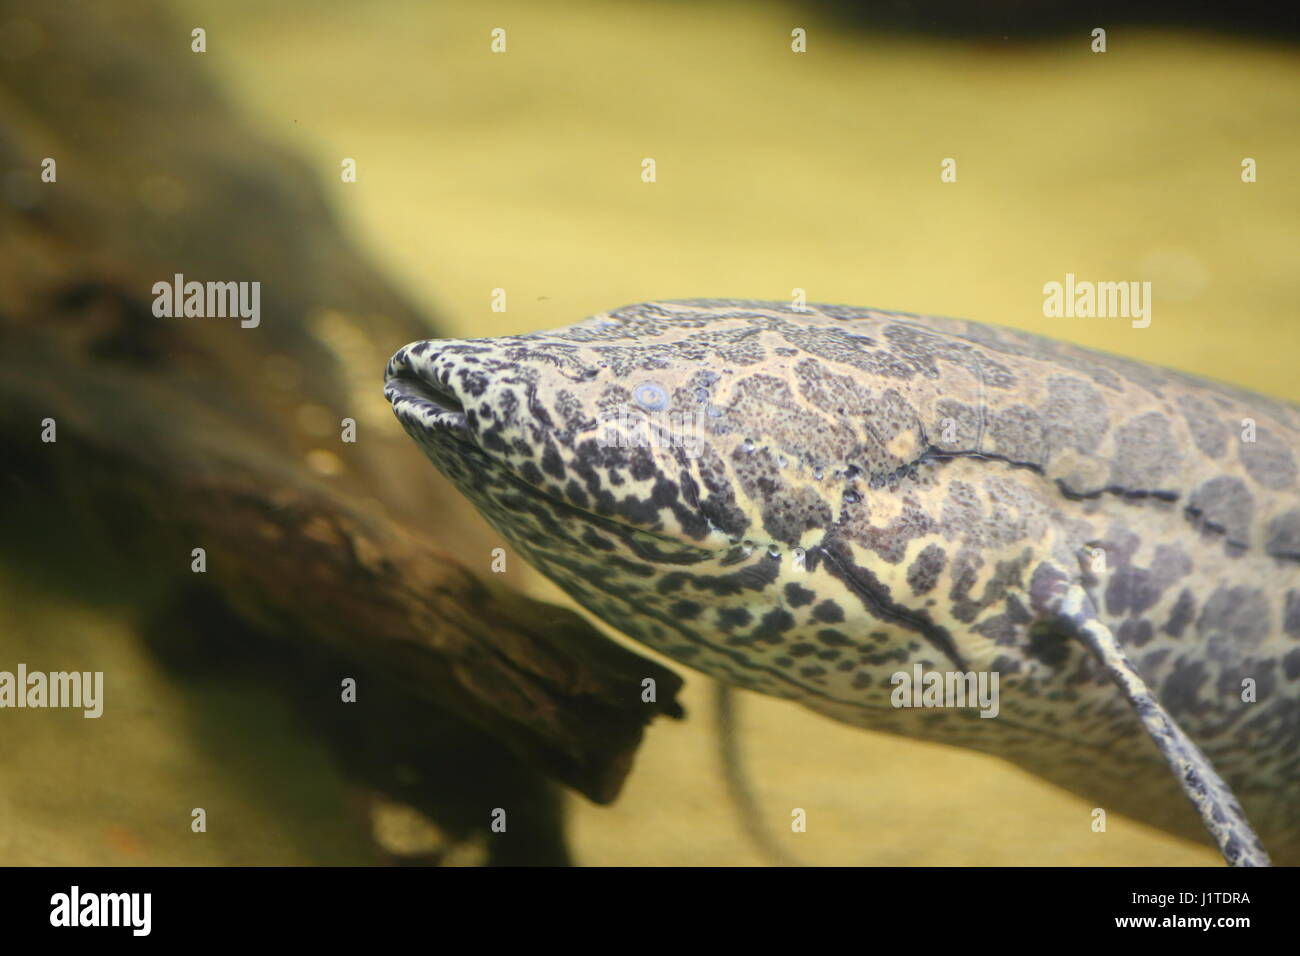 African Lungfish (Protopterus aethiopicus) in Africa - Stock Image